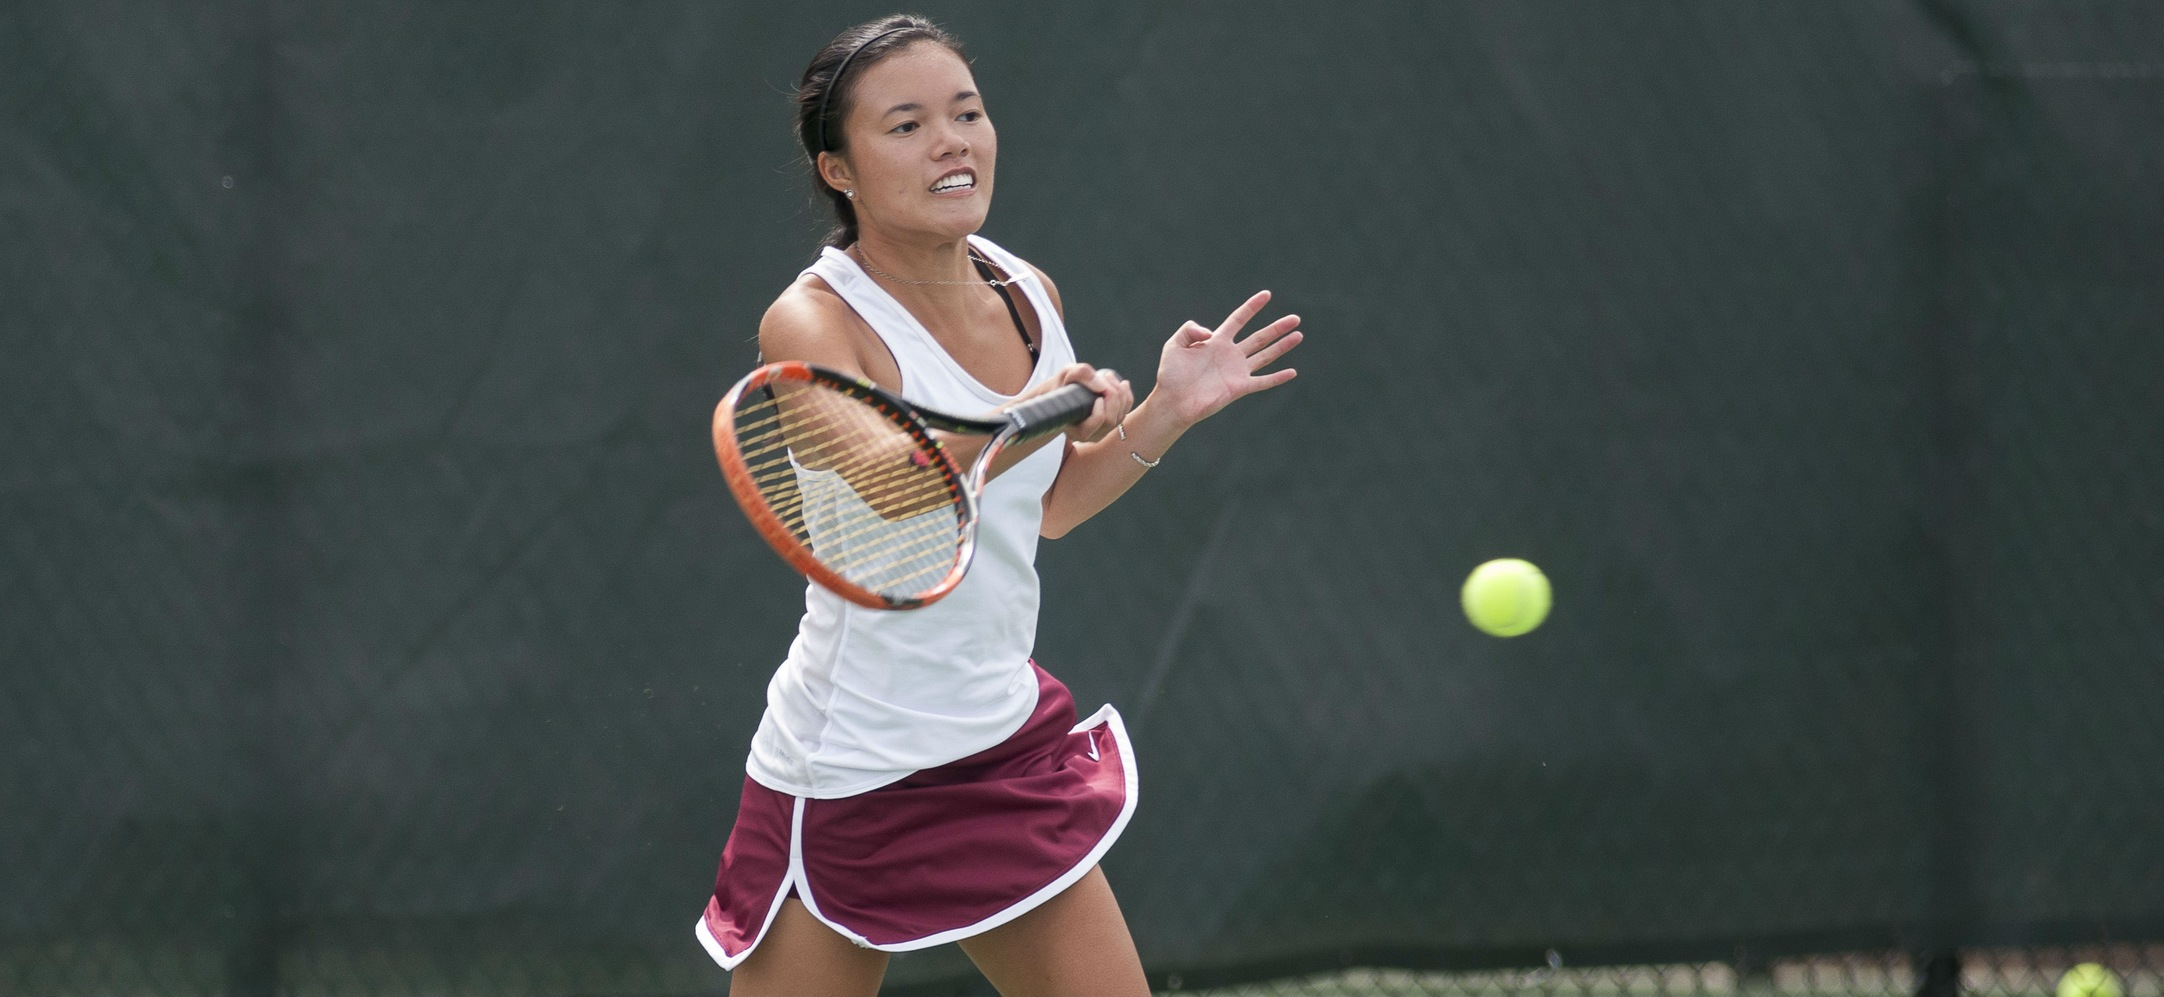 Mount Holyoke Edges Women's Tennis, 5-4